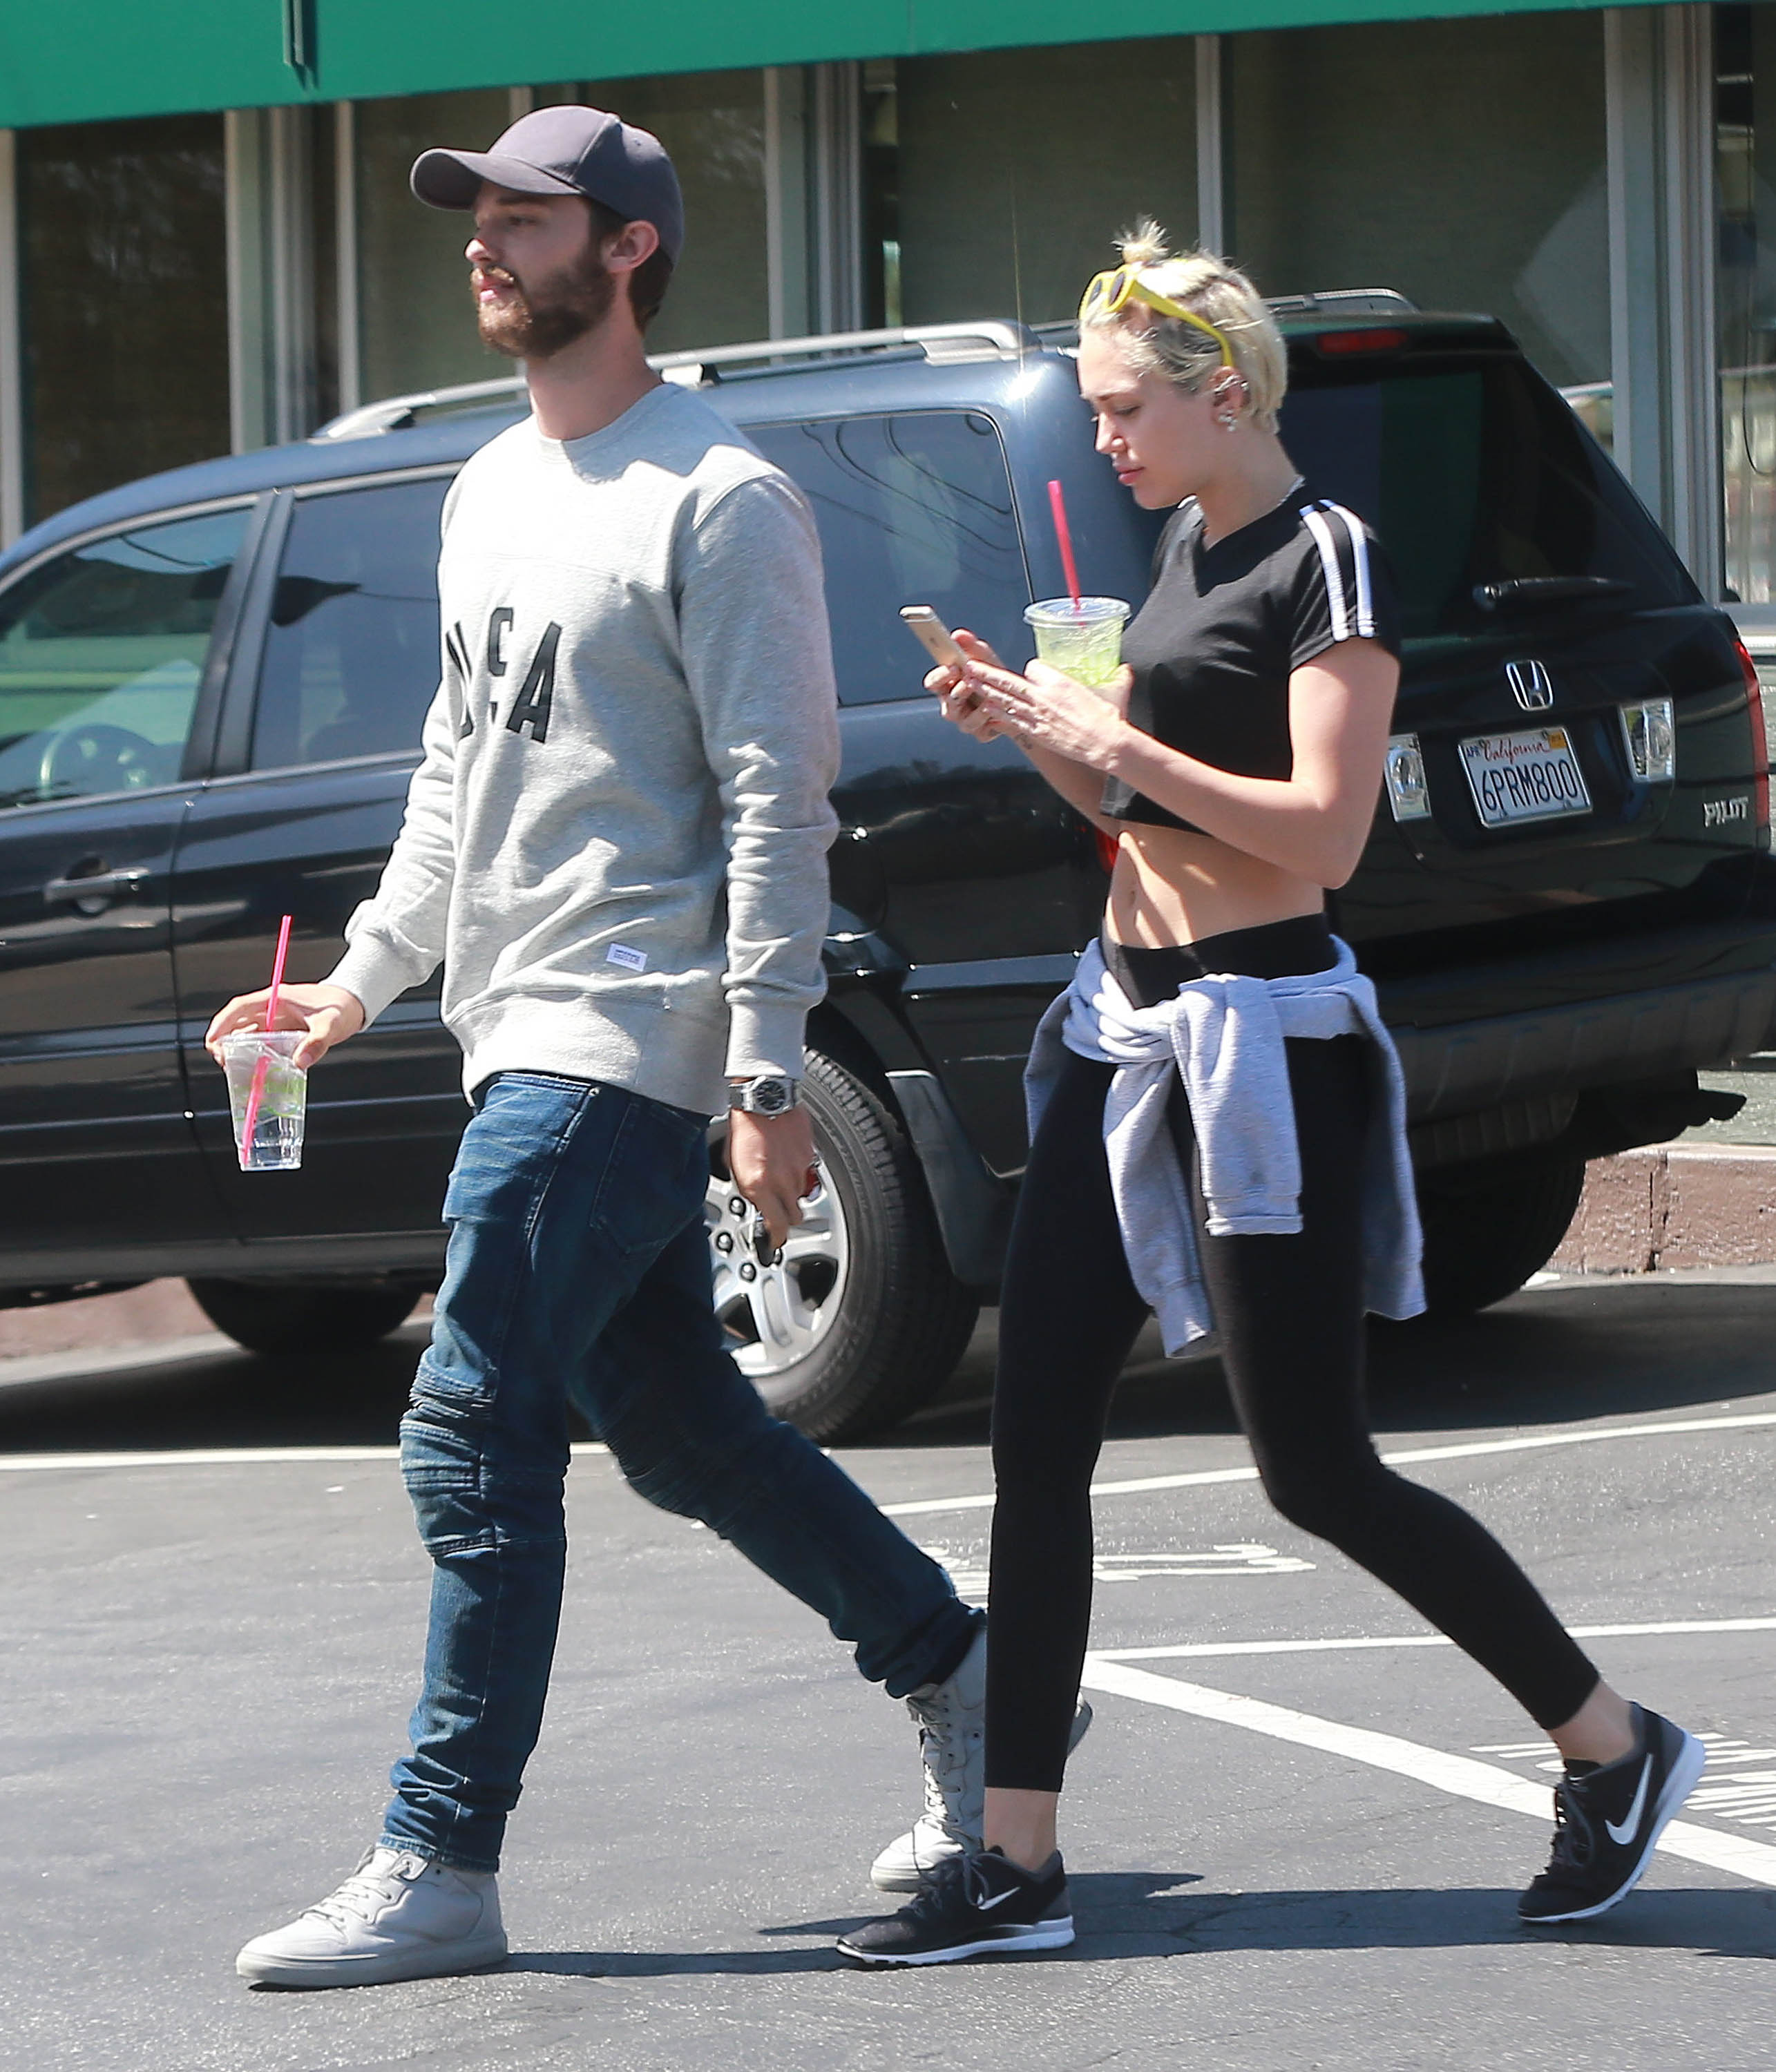 Semi-Exclusive... Miley Cyrus Forgives and Forgets as She Gets Cozy With Patrick Schwarzenegger  - ADD WEB FEES